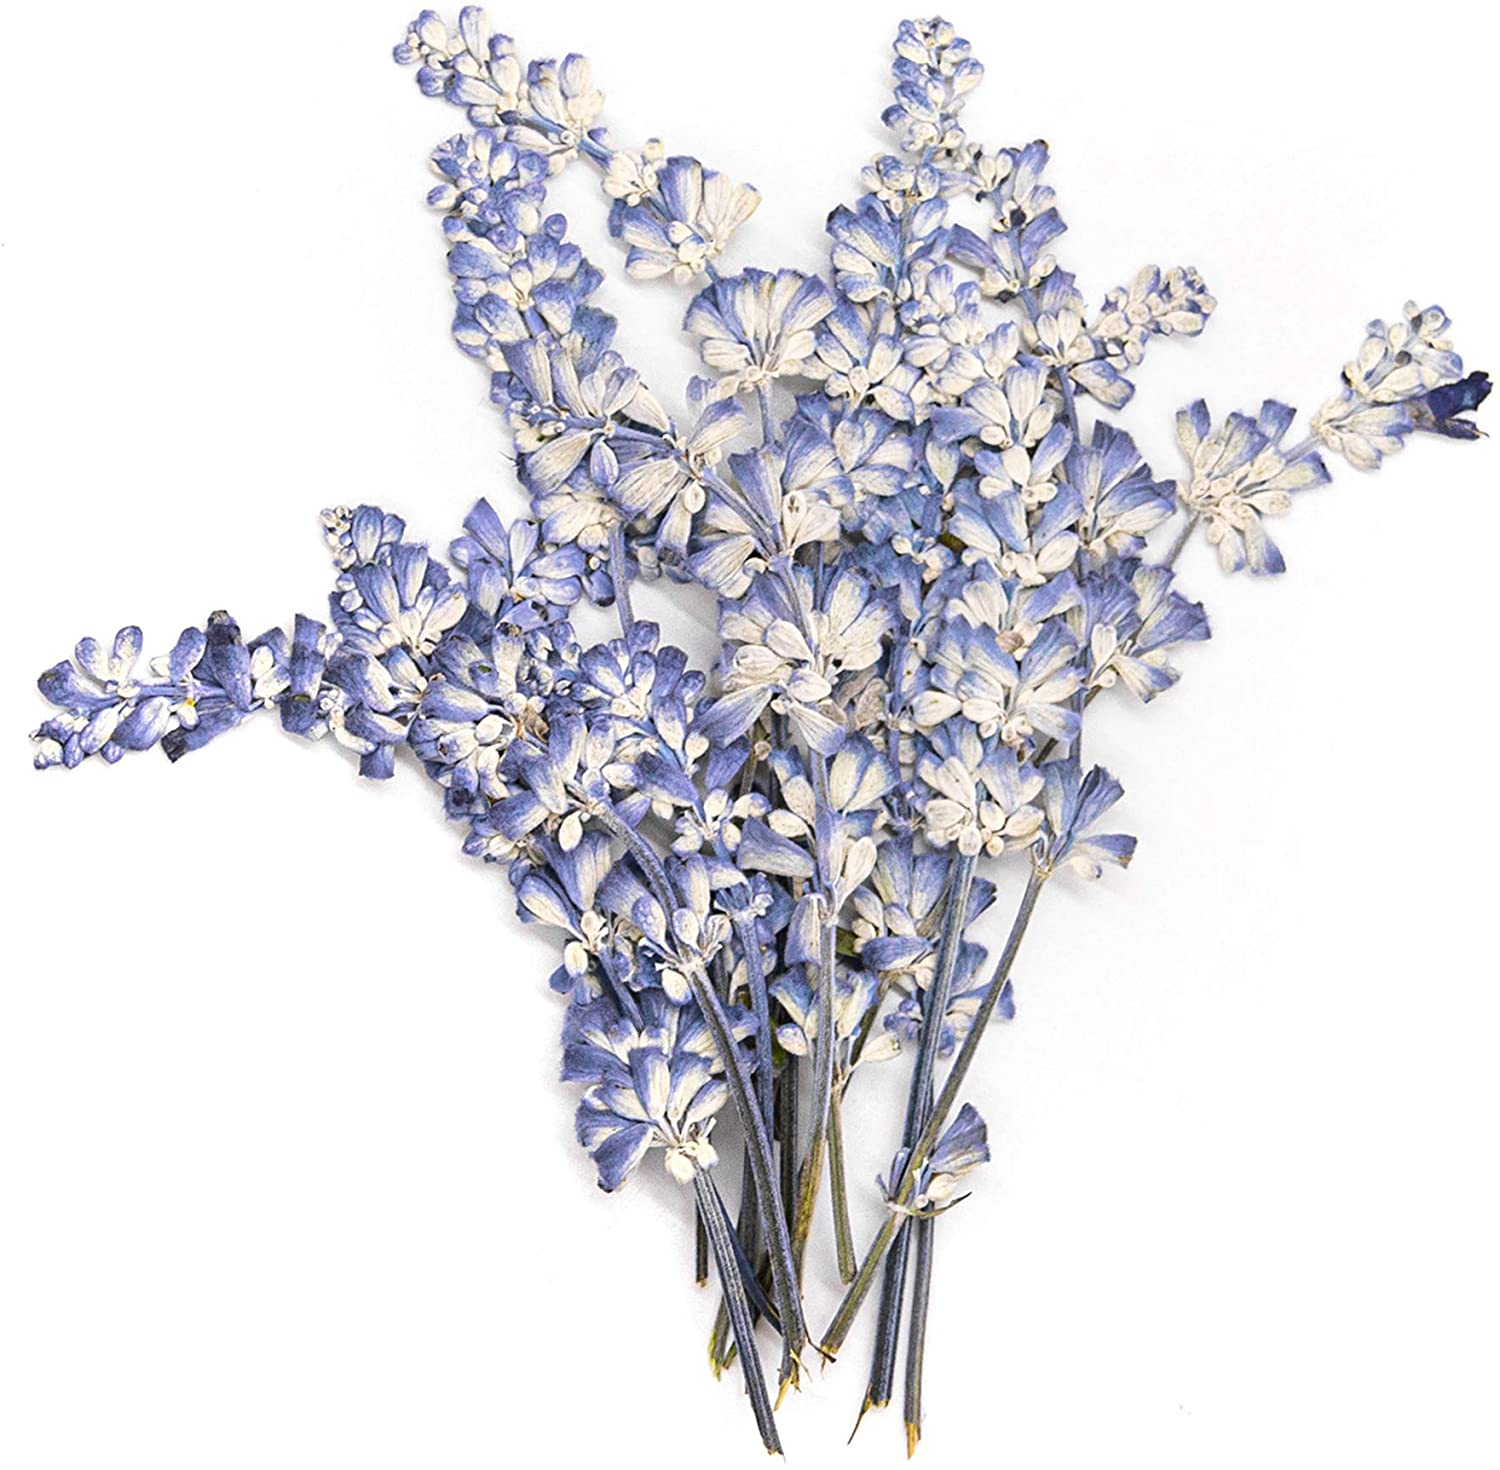 AUEAR, 16 PCS Real Dried Flower Sage Flowers Natural Dried Flowers Pressed Flower Scrapbooking Embellishments